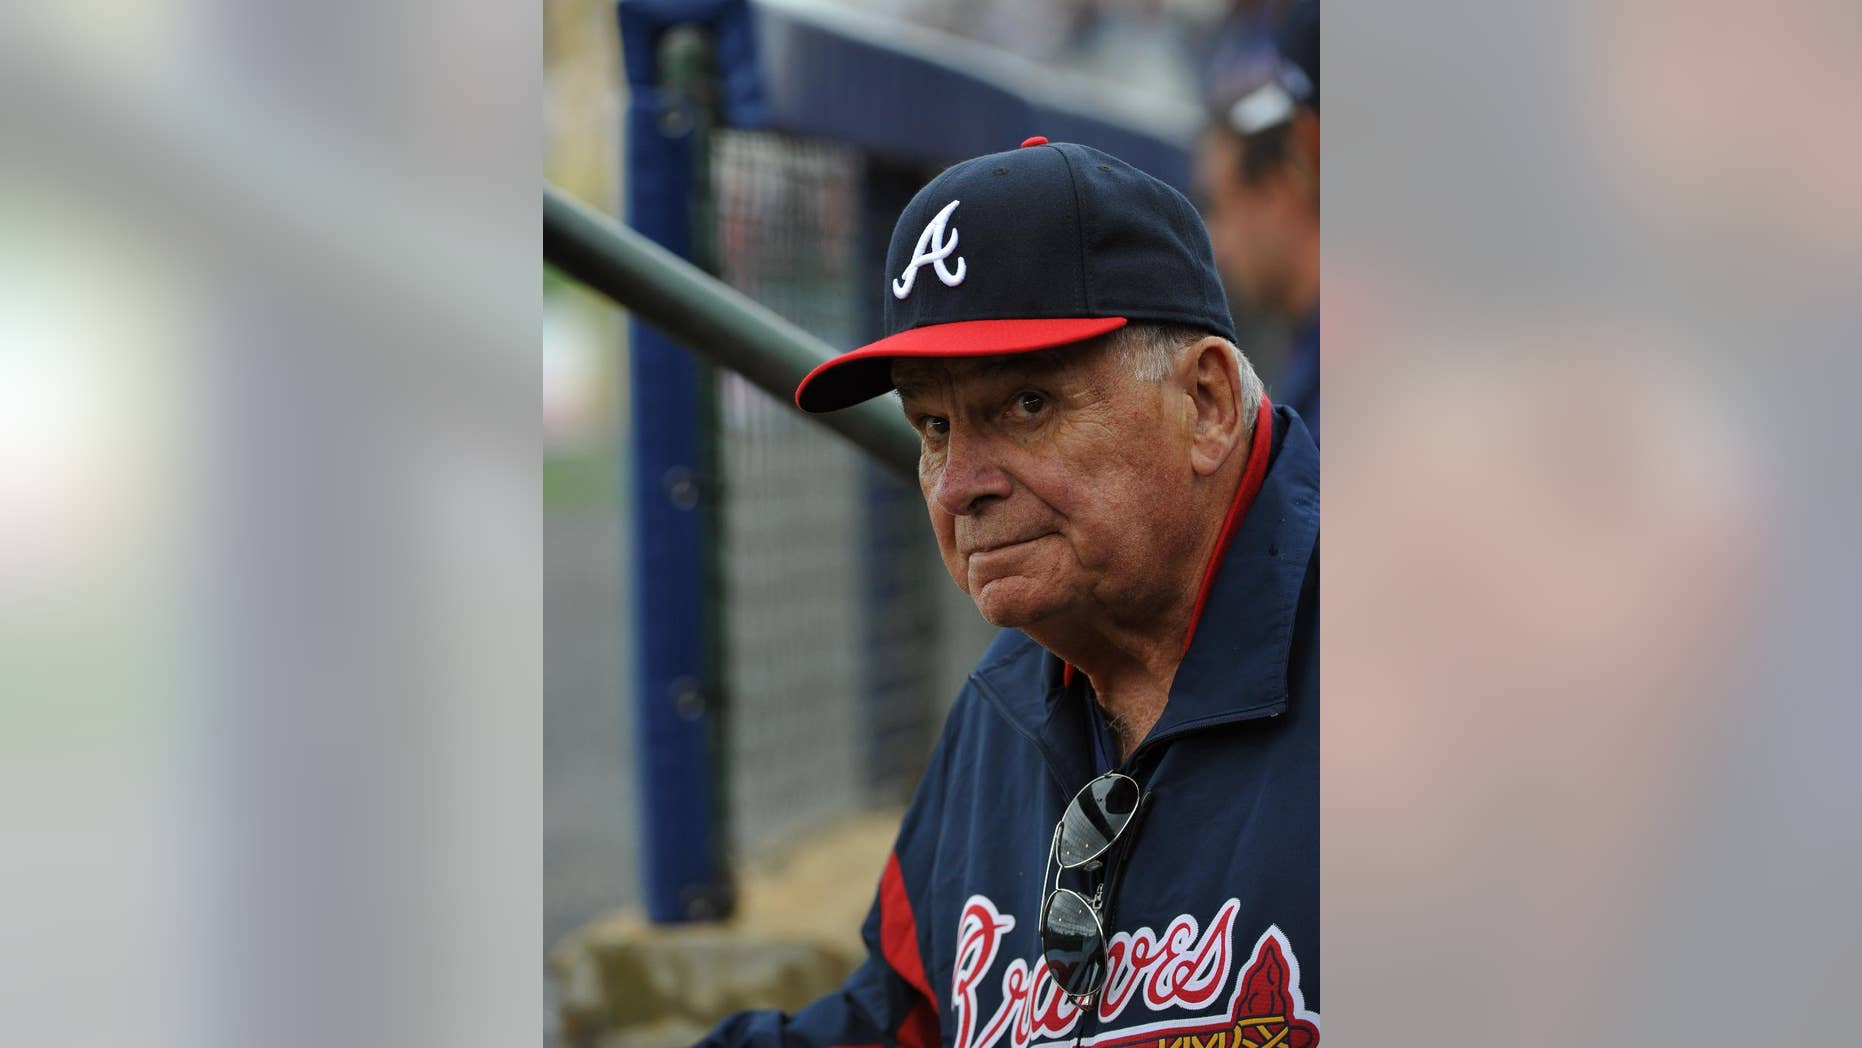 """Former Atlanta Braves coach Bobby Cox watches from the Dugout as he plays the Minor League Future Stars against the Atlanta Braves in a baseball baseball game on Saturday, March 29, 201<div class=""""e3lan e3lan-in-post1""""><script async src=""""//pagead2.googlesyndication.com/pagead/js/adsbygoogle.js""""></script> <!-- Text_Display_Responsive --> <ins class=""""adsbygoogle""""      style=""""display:block""""      data-ad-client=""""ca-pub-6192903739091894""""      data-ad-slot=""""3136787391""""      data-ad-format=""""auto""""      data-full-width-responsive=""""true""""></ins> <script> (adsbygoogle = window.adsbygoogle 